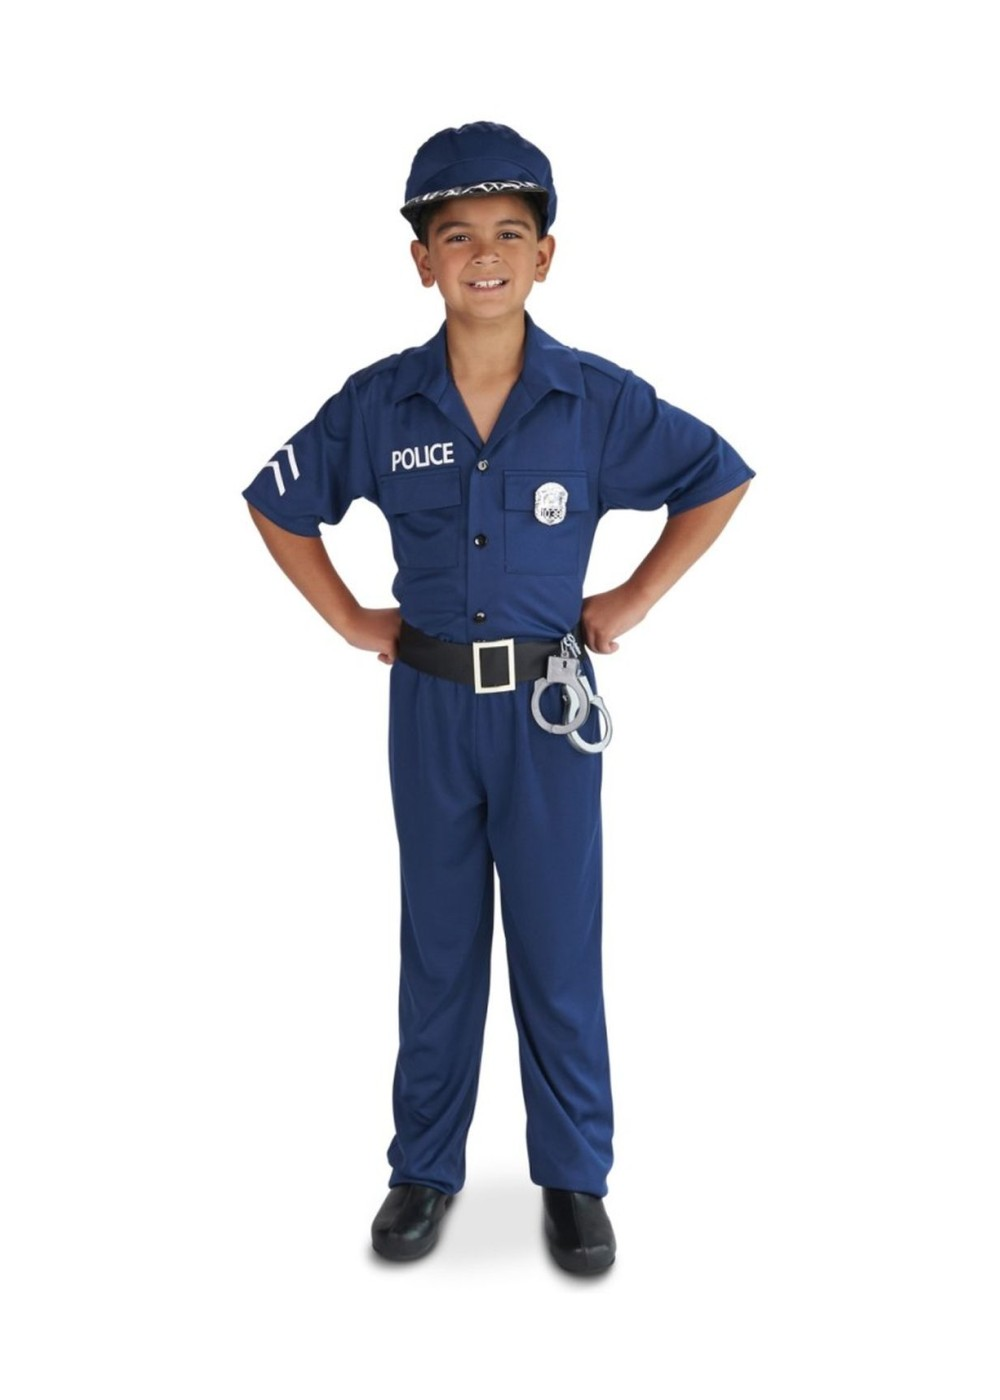 Boys police officer costume professional costumes - Police officer child costume ...